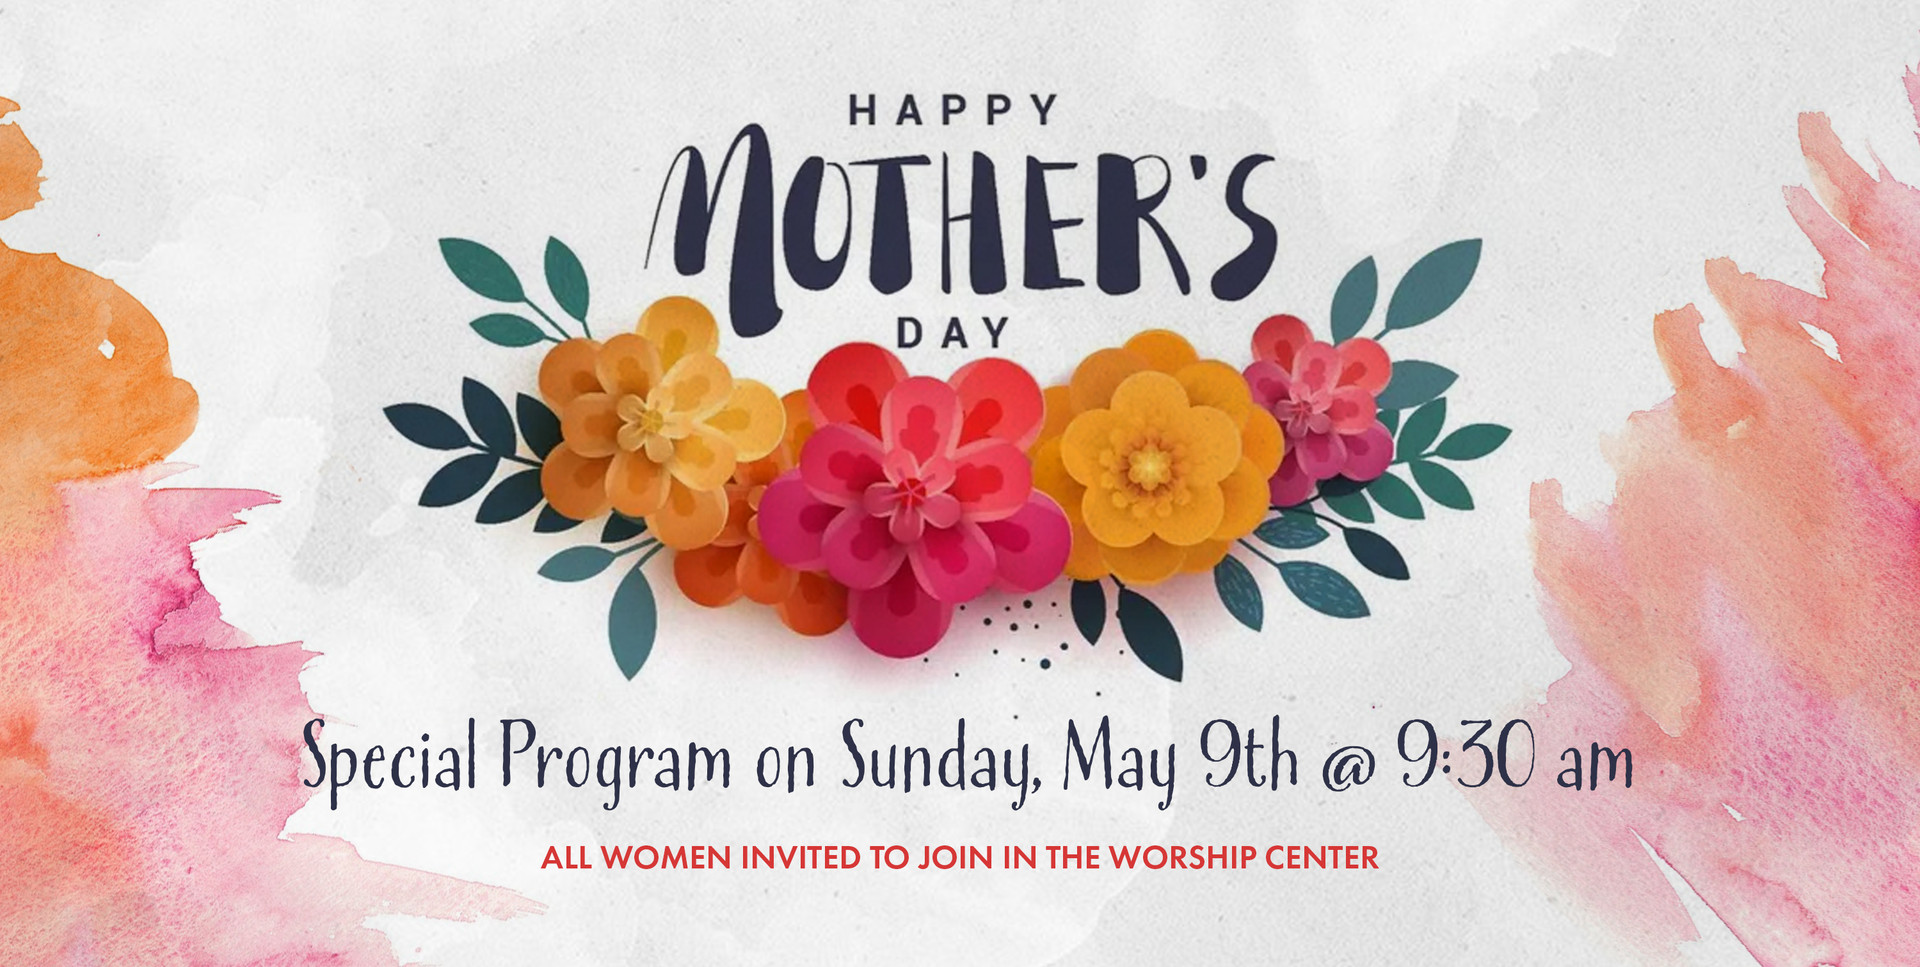 MOTHERS DAY PROGRAM